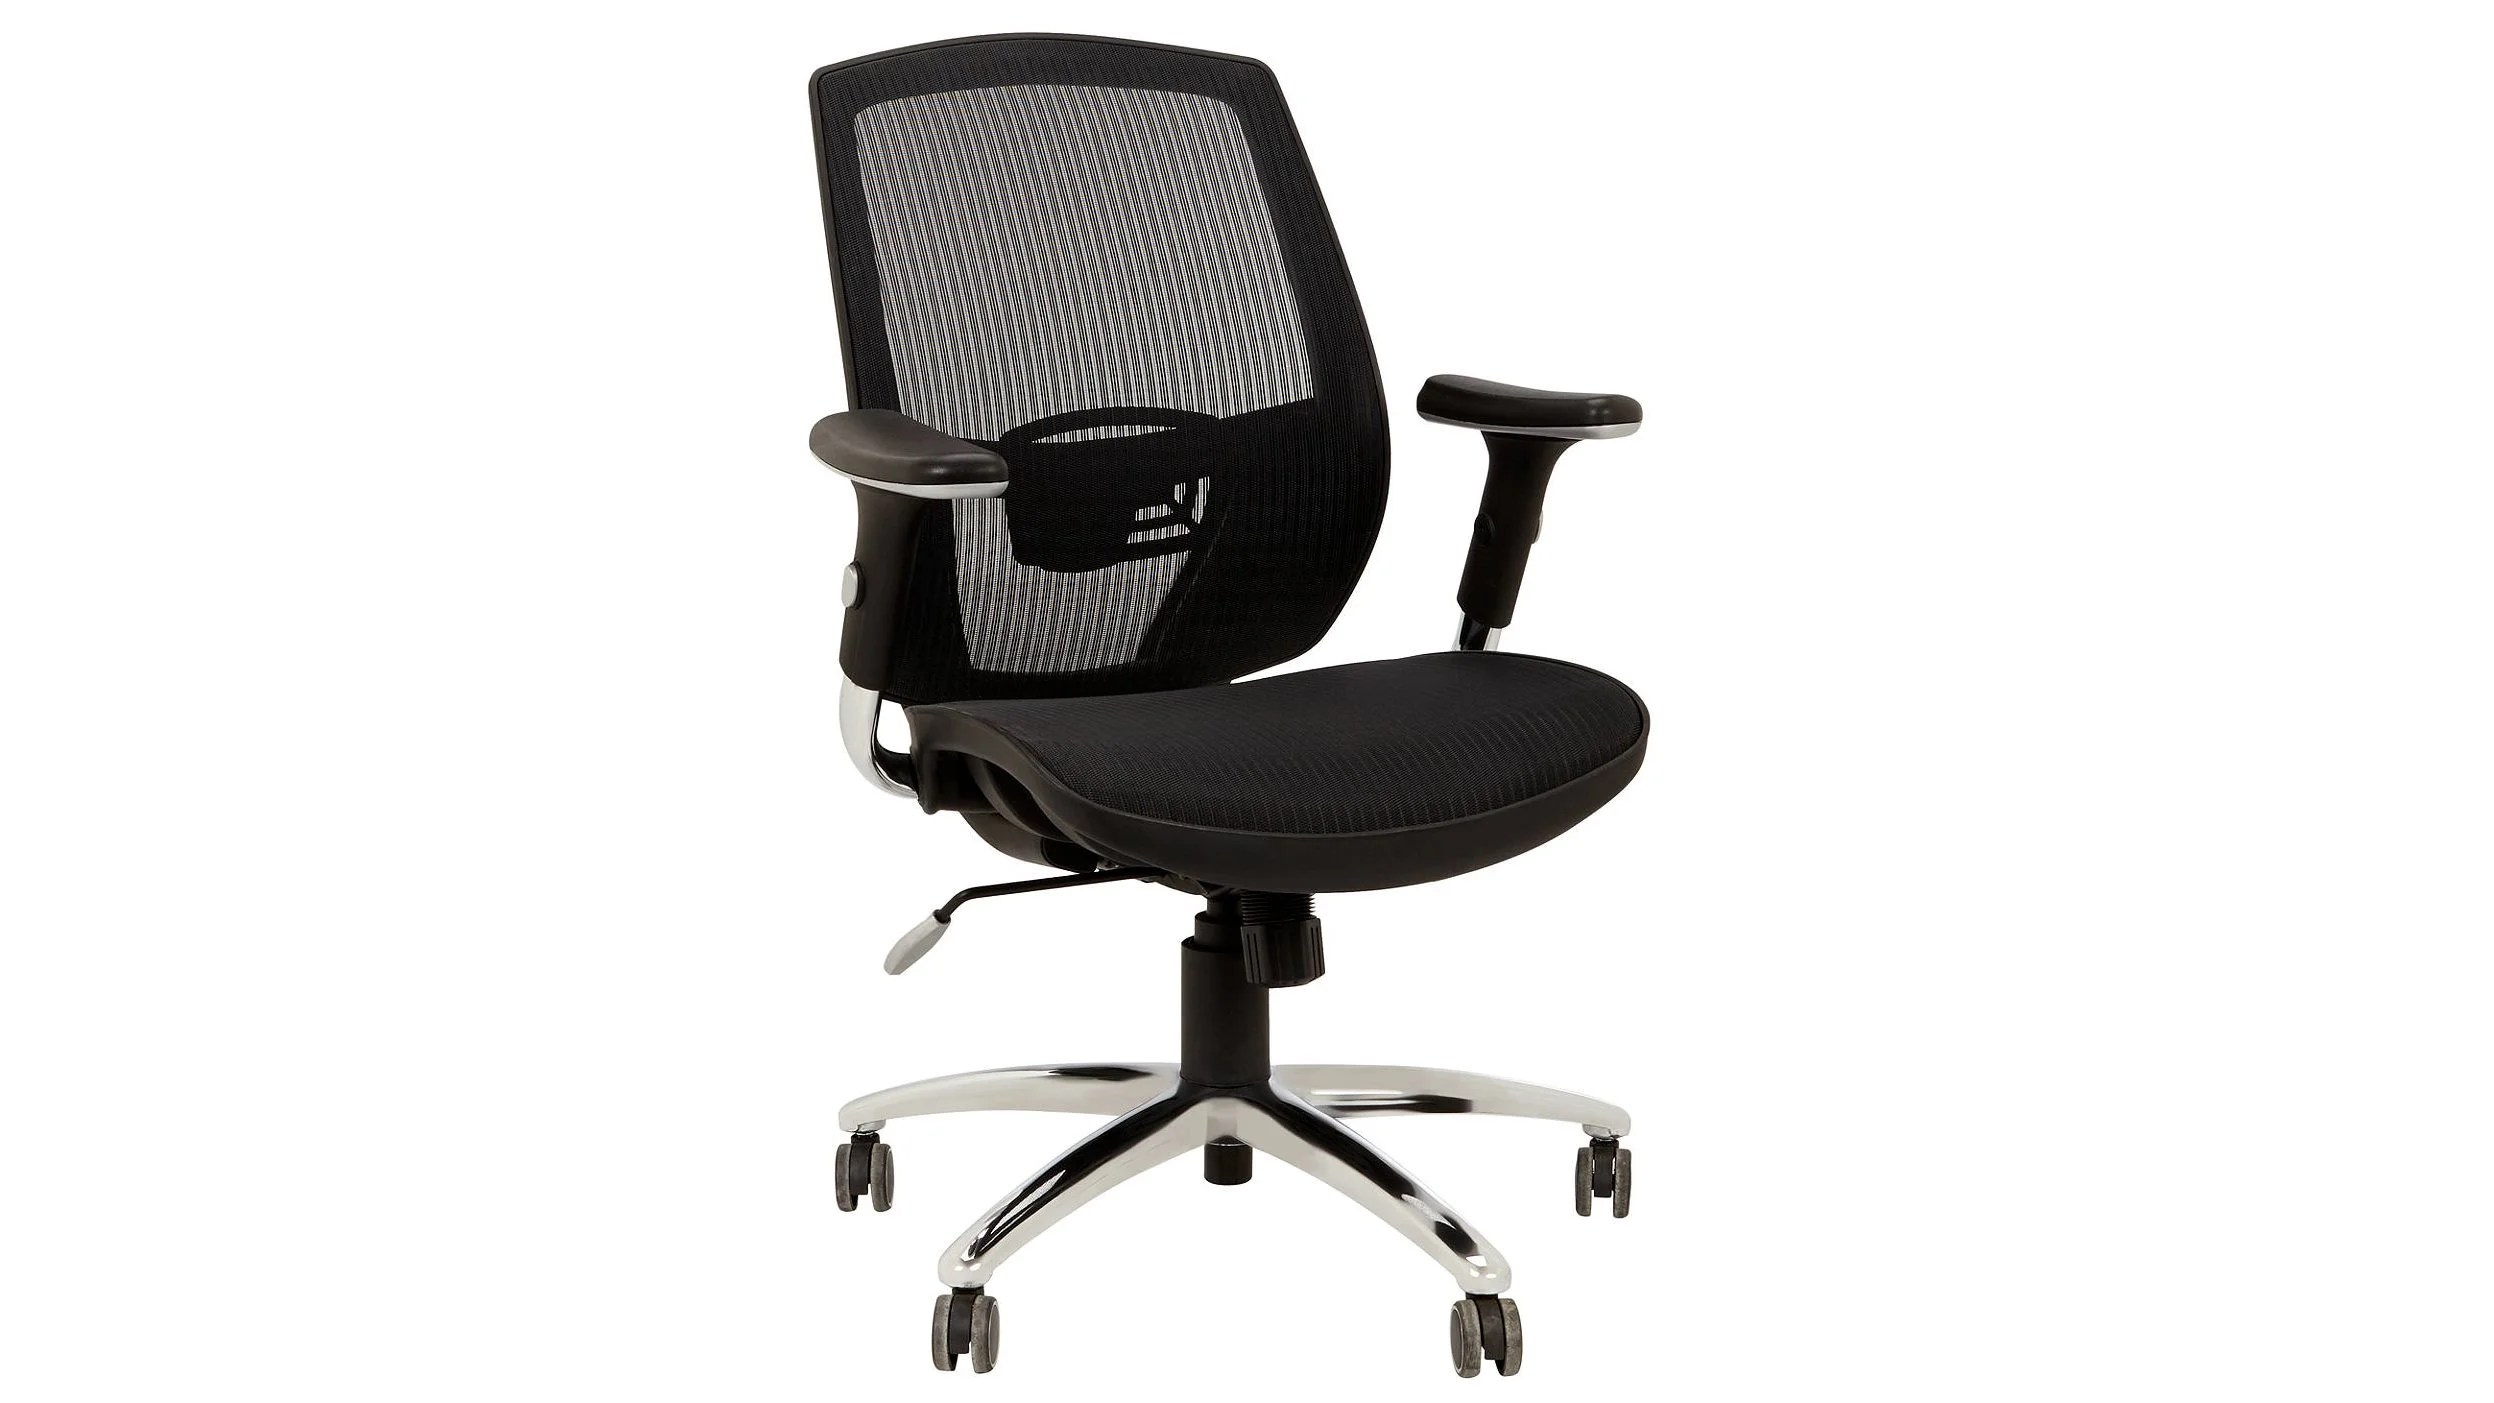 Best Ergonomic Office Chair Best Office Chair 2018 Style Comfort And Adjustability From As